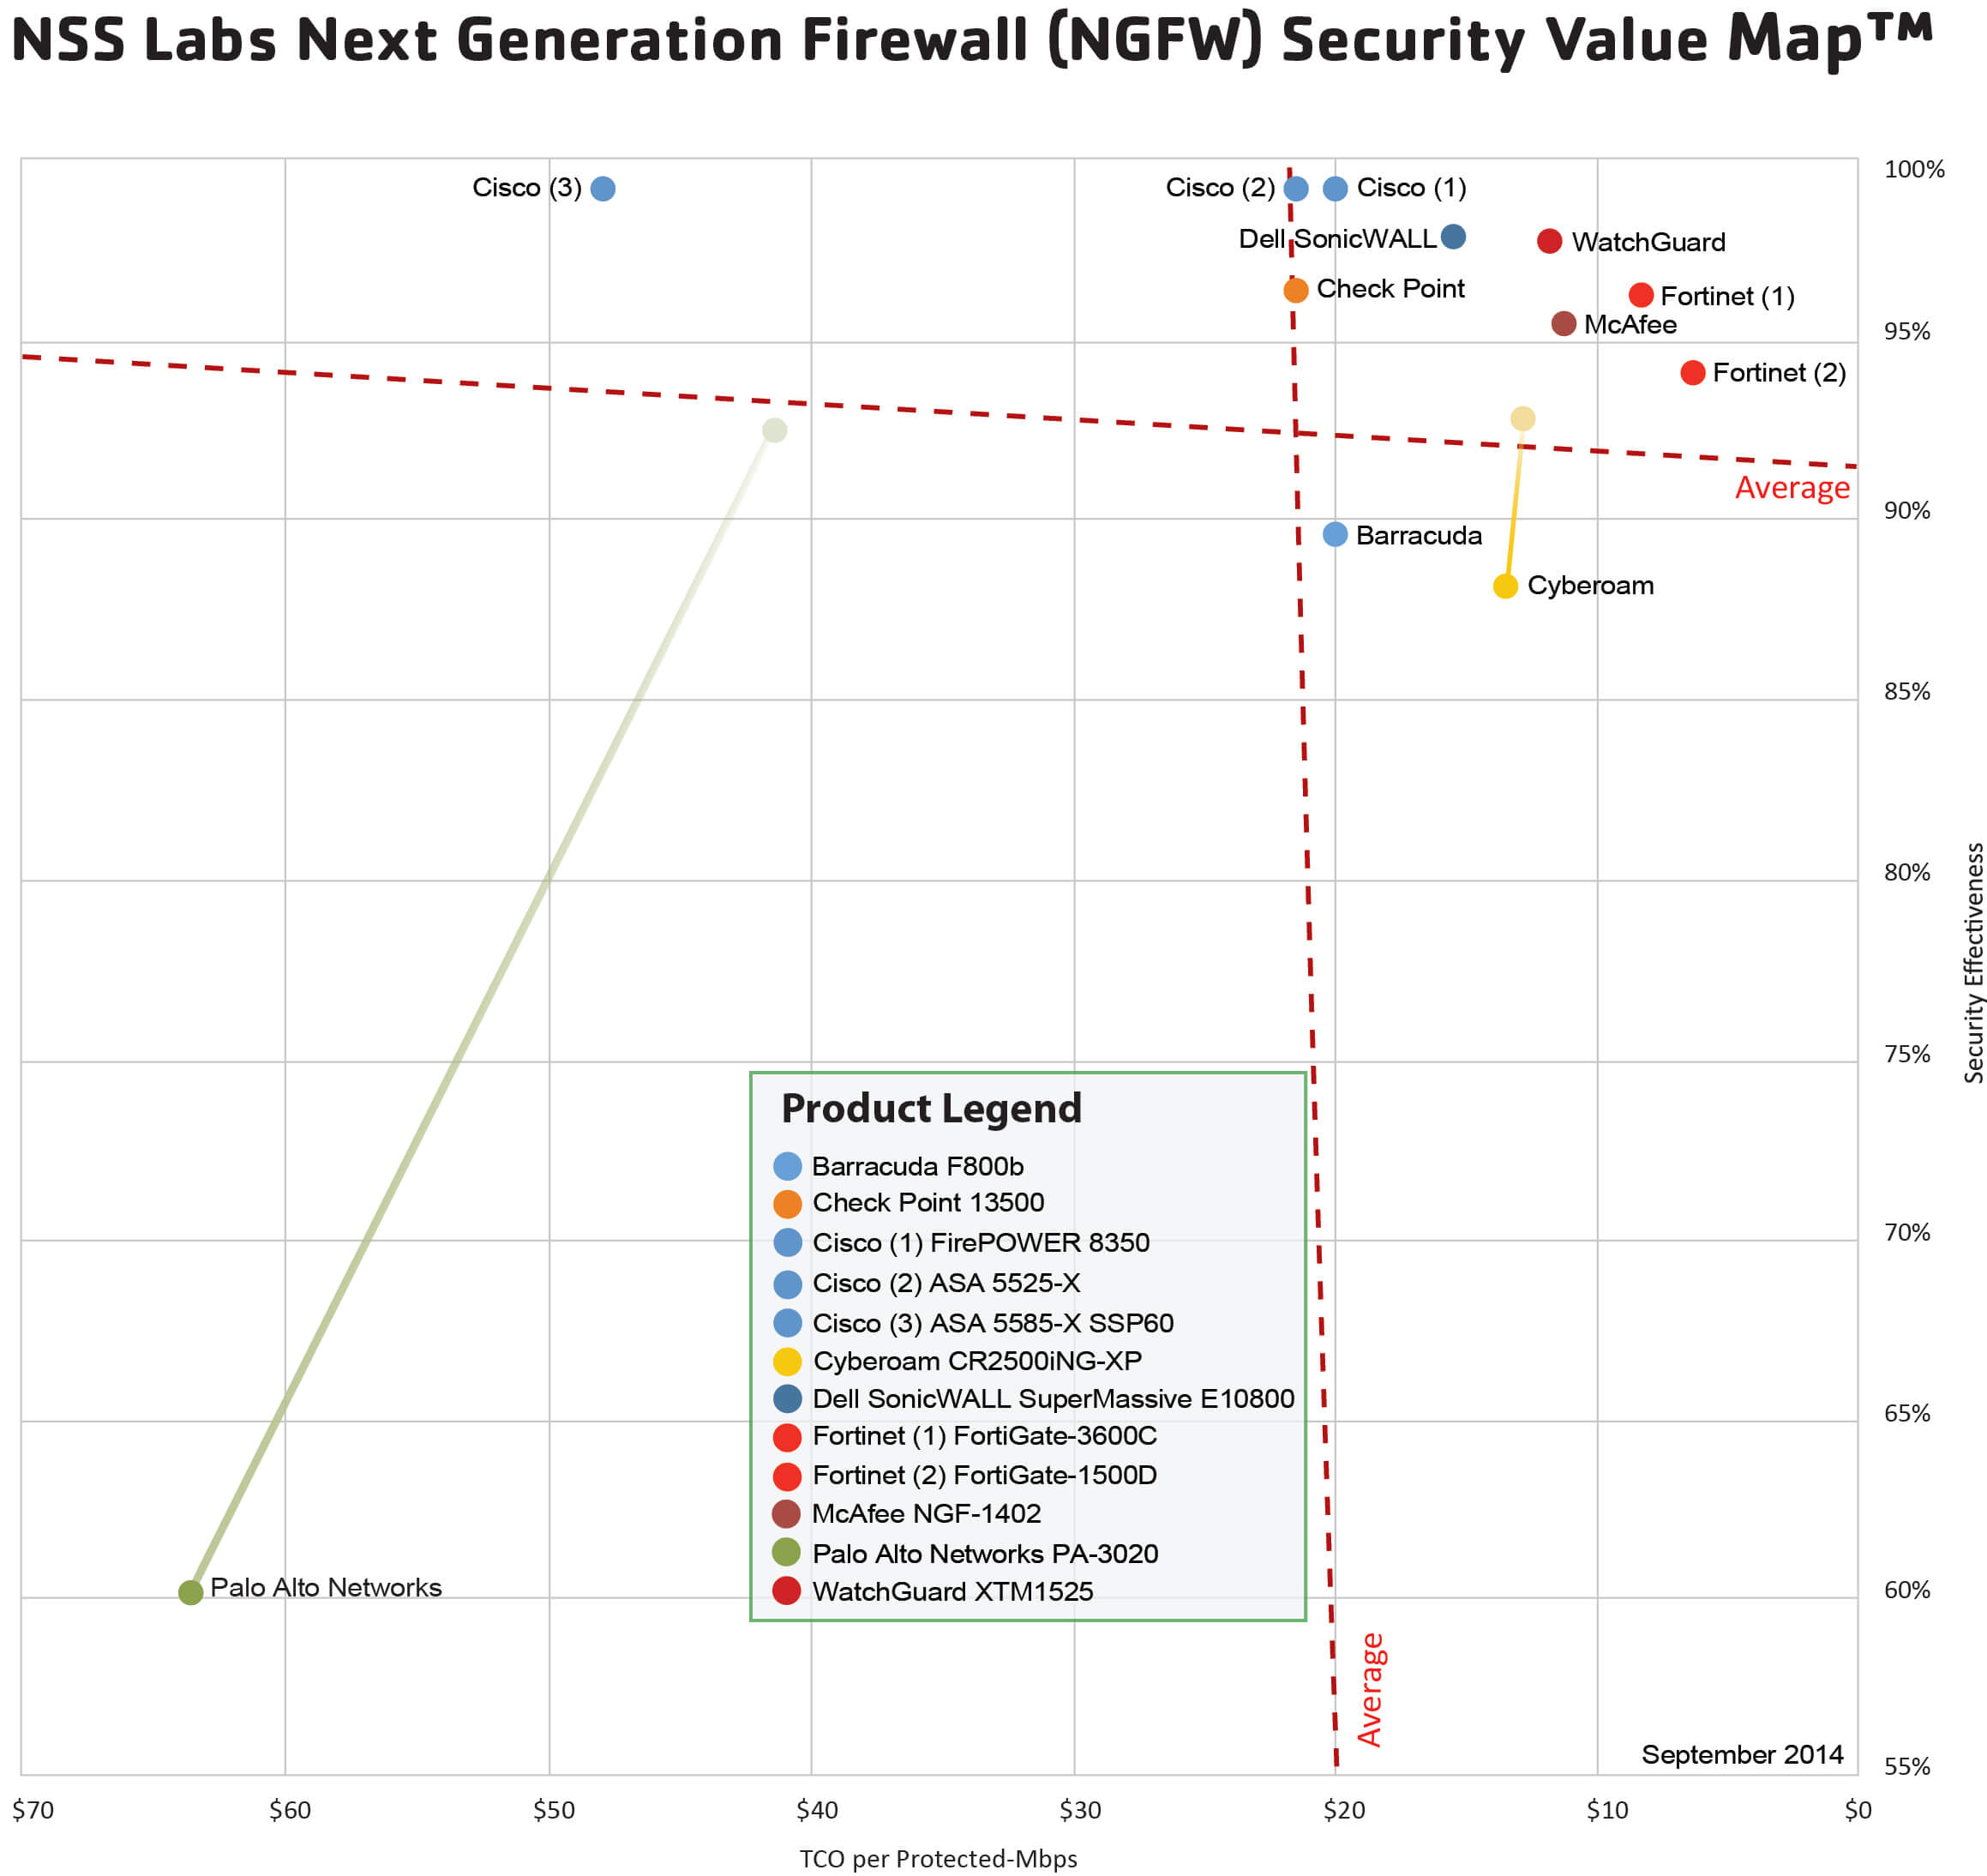 NSS Labs Next Generation Firewall (NGFW) Security Value Map™